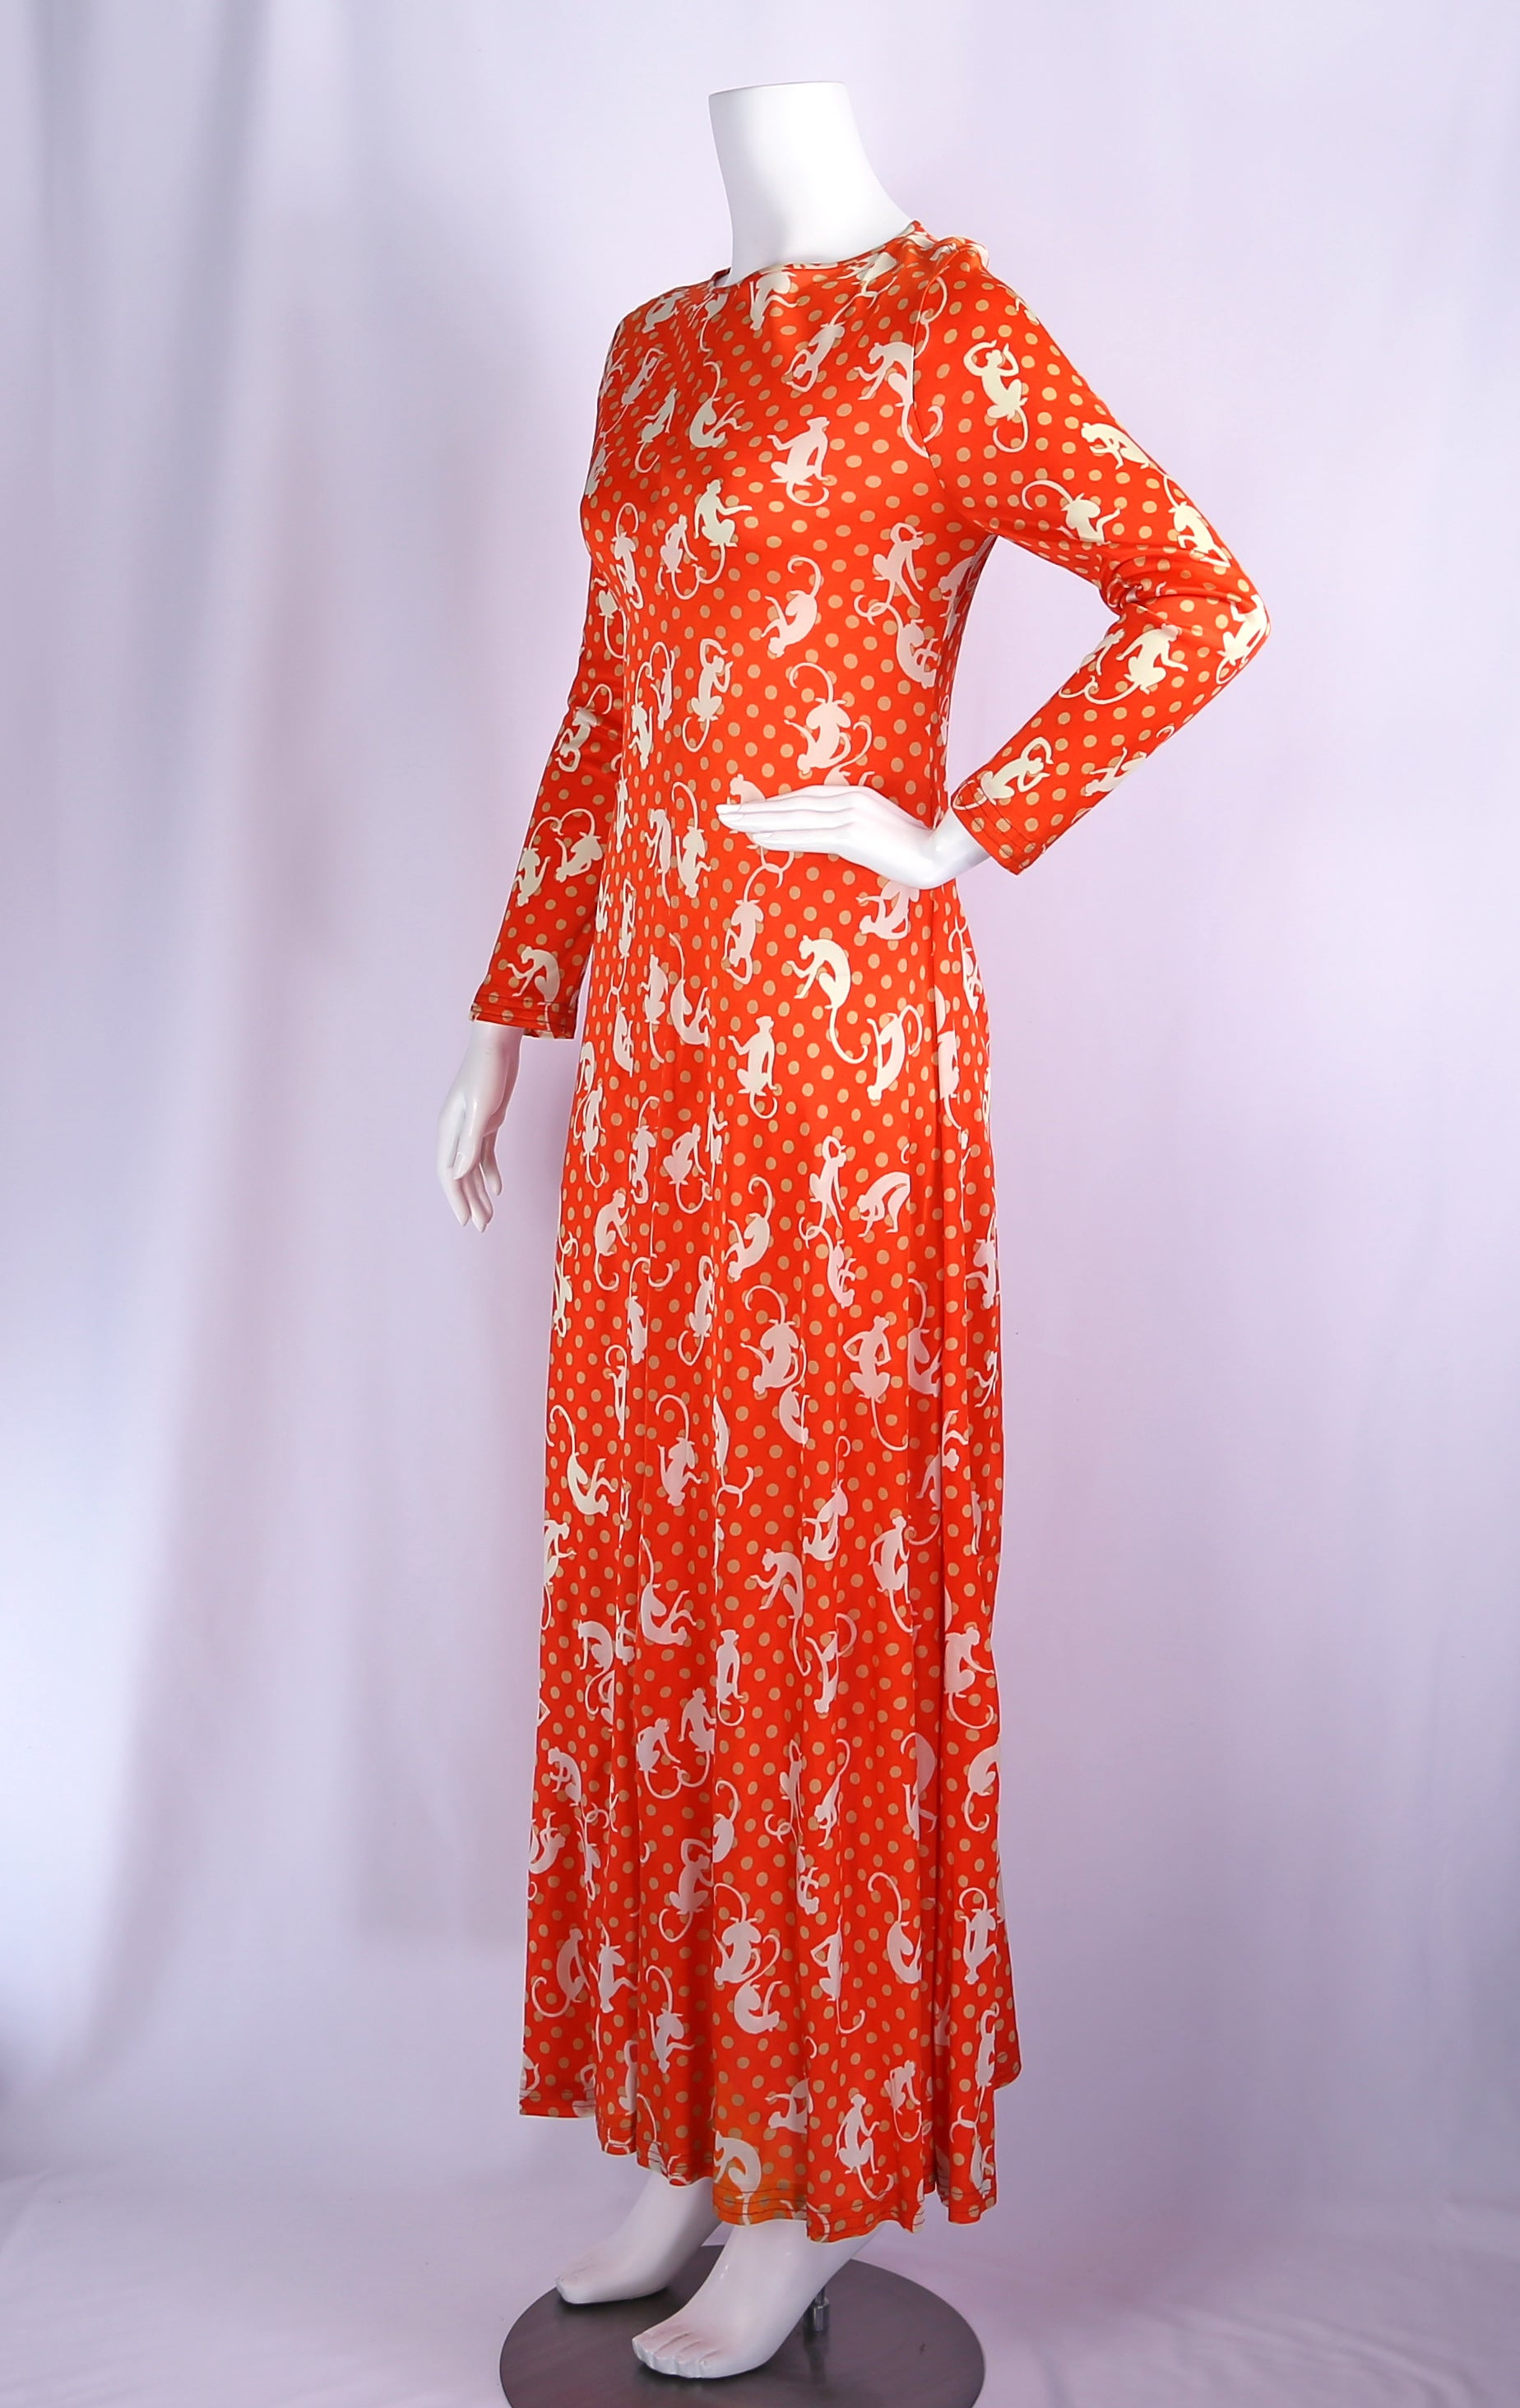 1970s Maxi Dress with Monkey Print